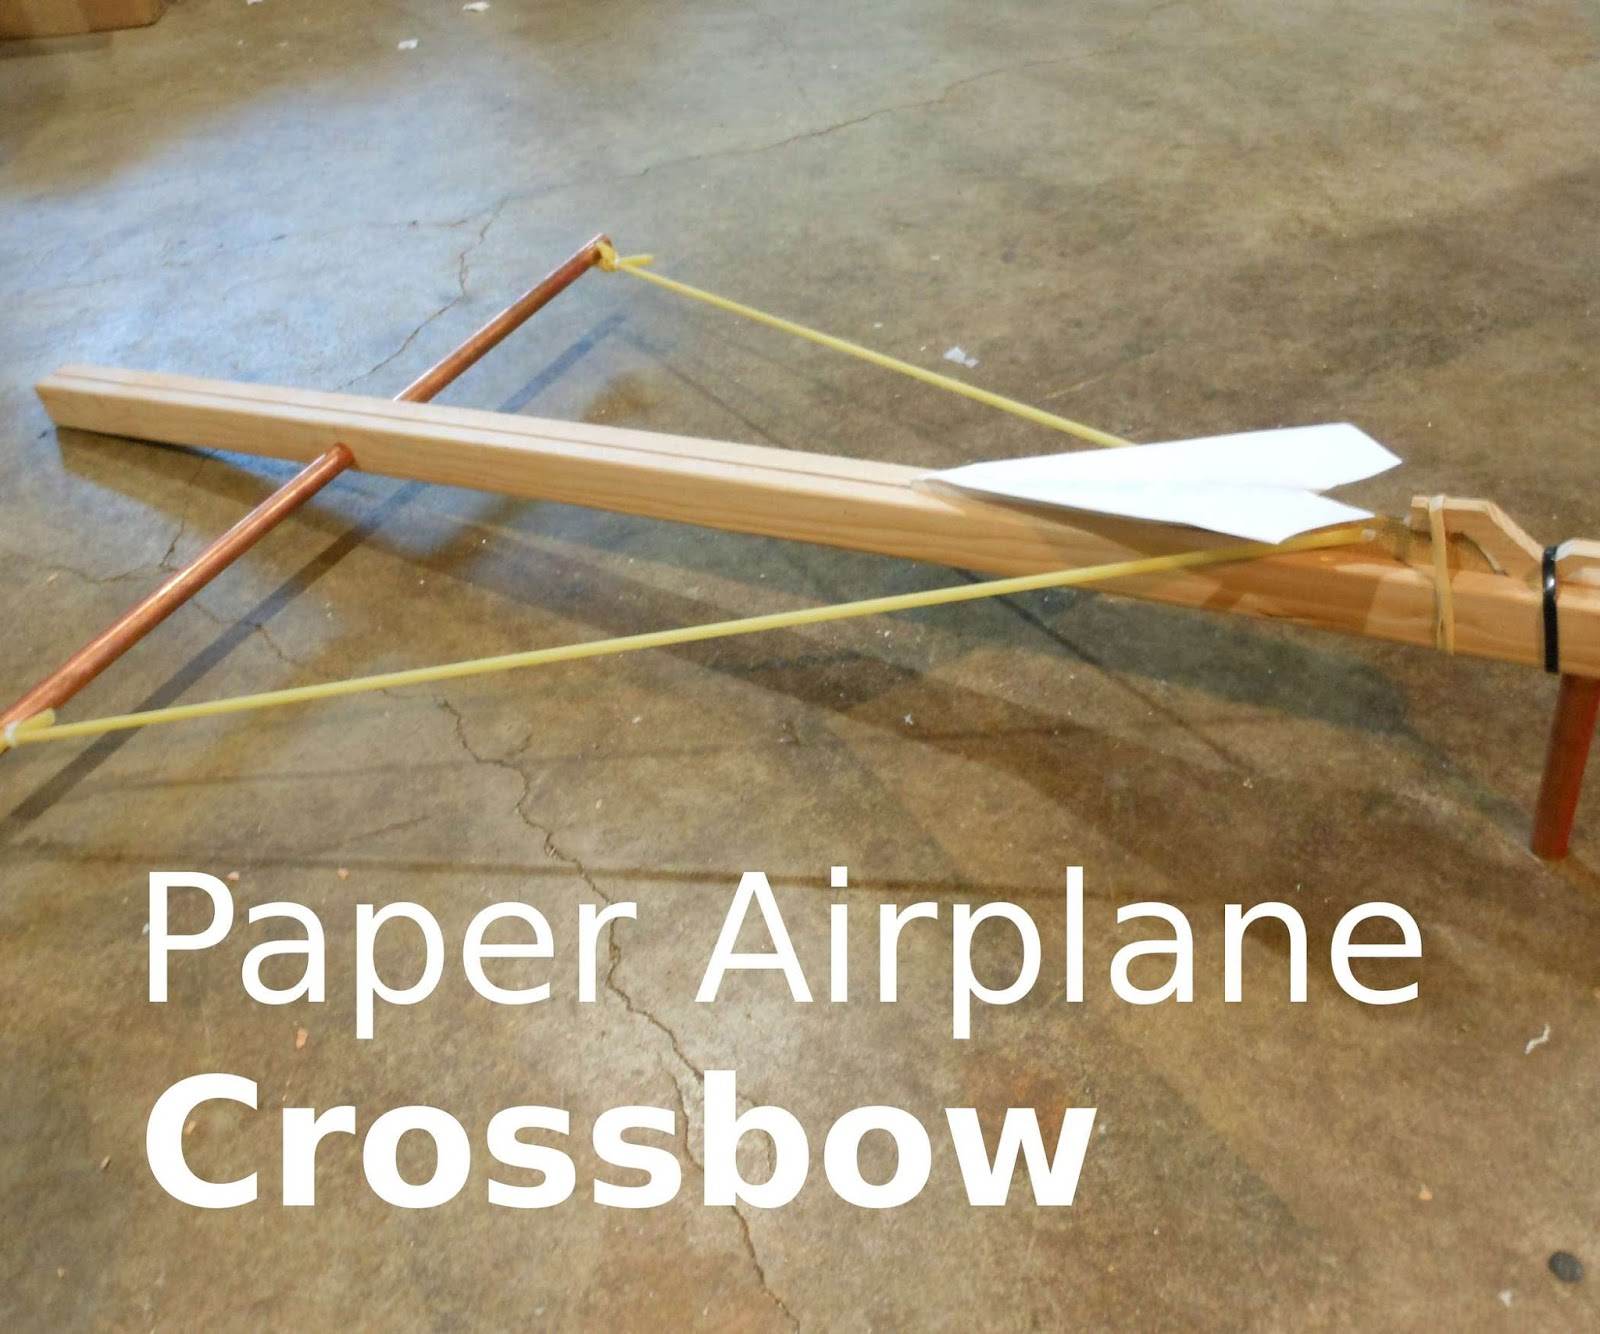 research paper airplanes View airplanes research papers on academiaedu for free.